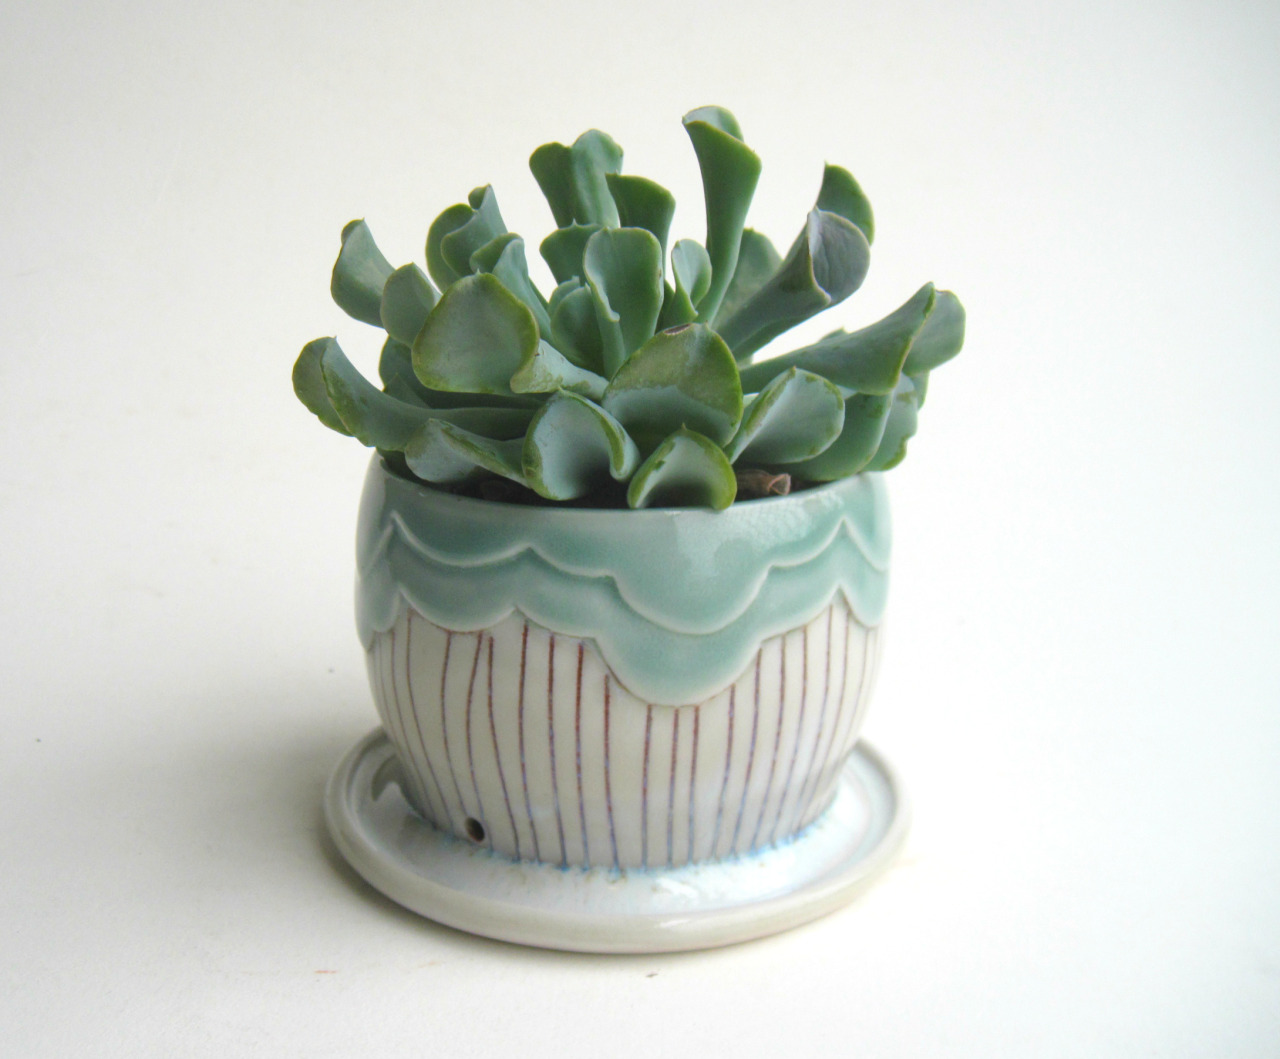 Cactus Planters Pottery Art Seattle Artist Rain Clouds Crystal Gold Plants